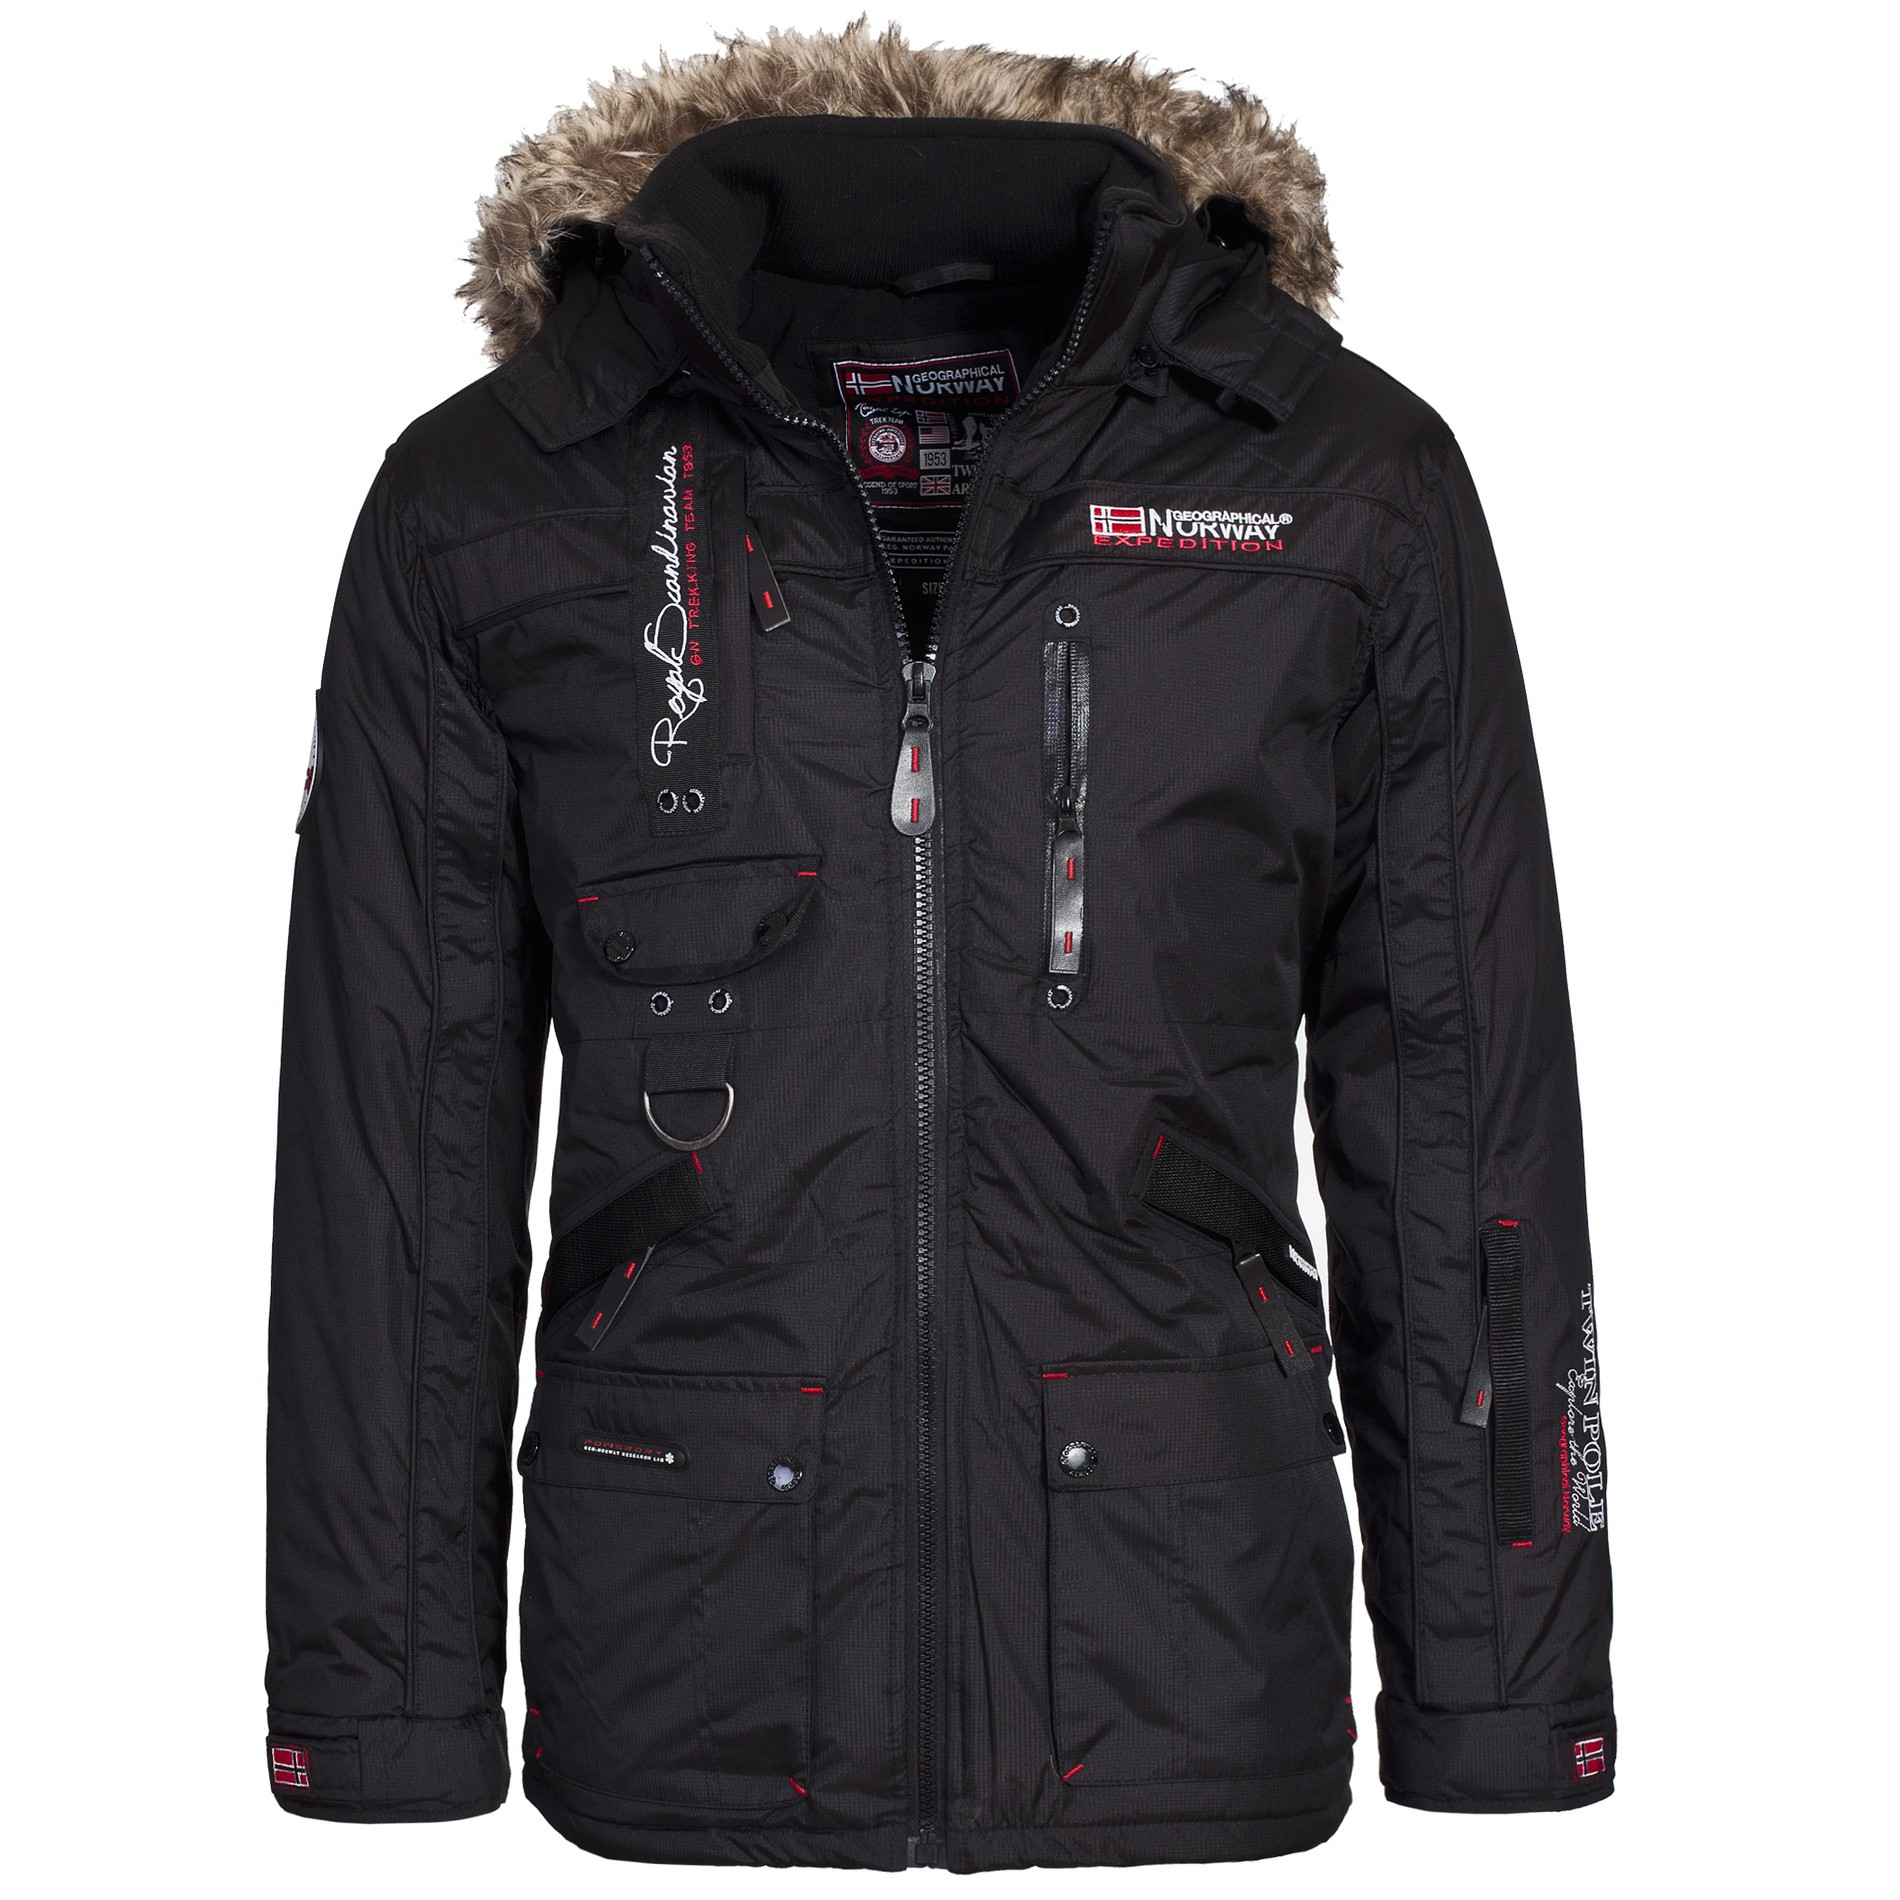 geographical norway avoriaz herren winterjacke winter. Black Bedroom Furniture Sets. Home Design Ideas